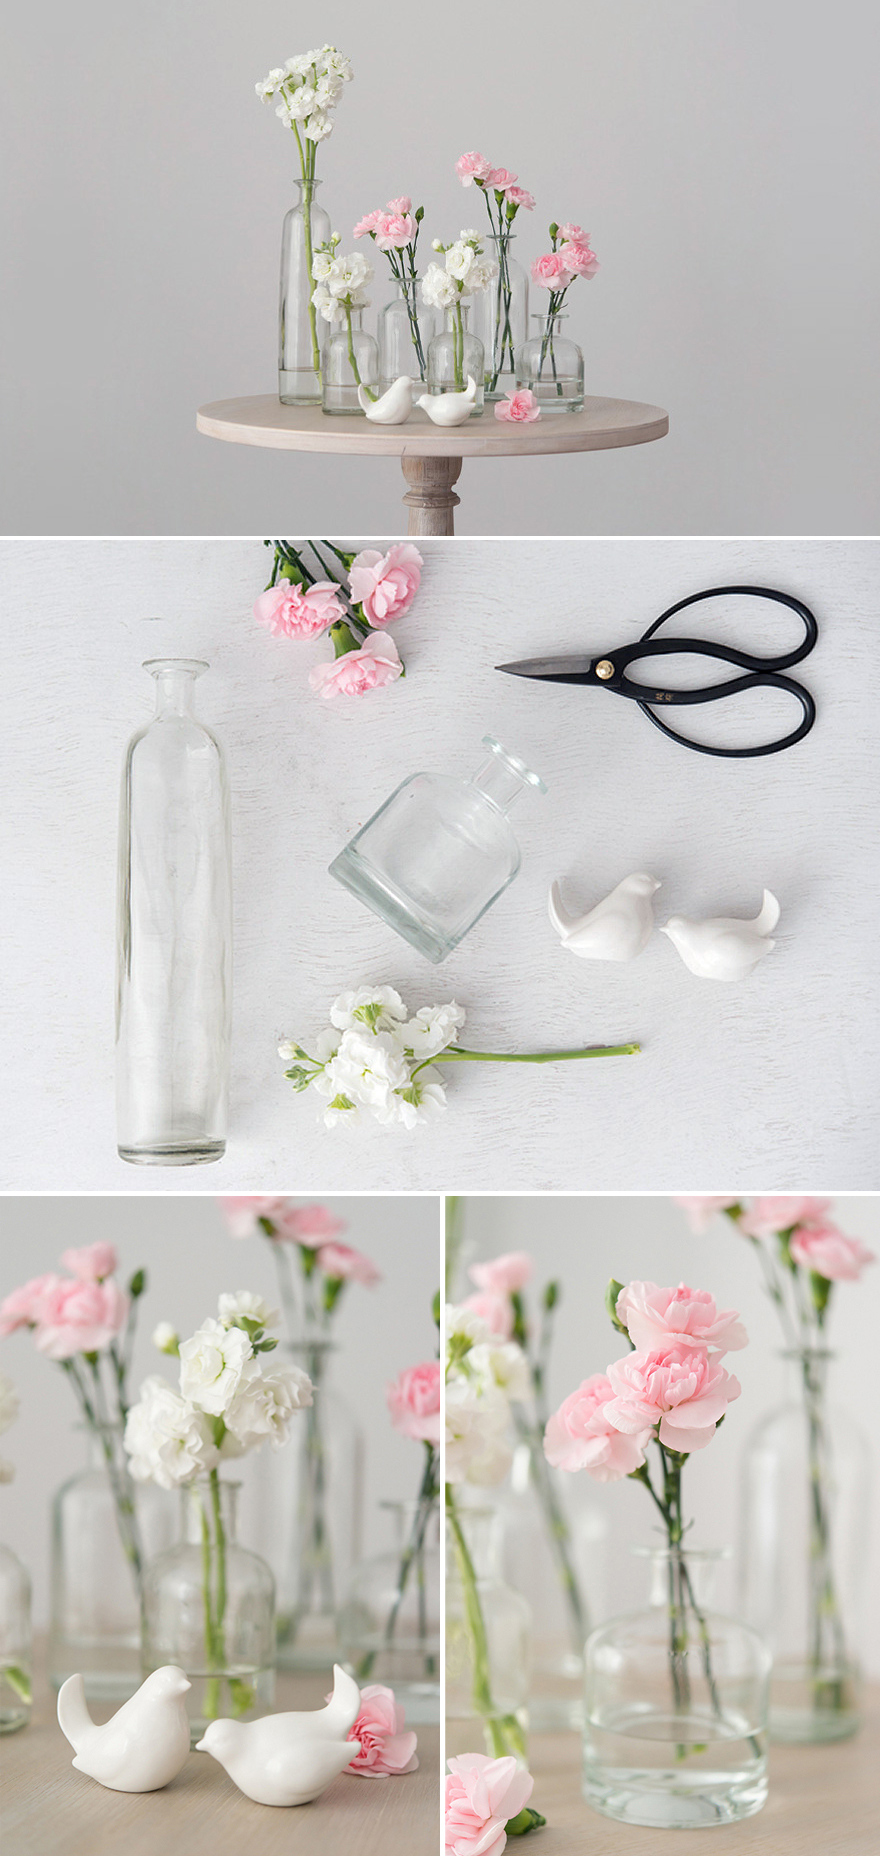 DIY Bird Centrepiece with Glass Bottles and Pink and White Carnations | Confetti.co.uk